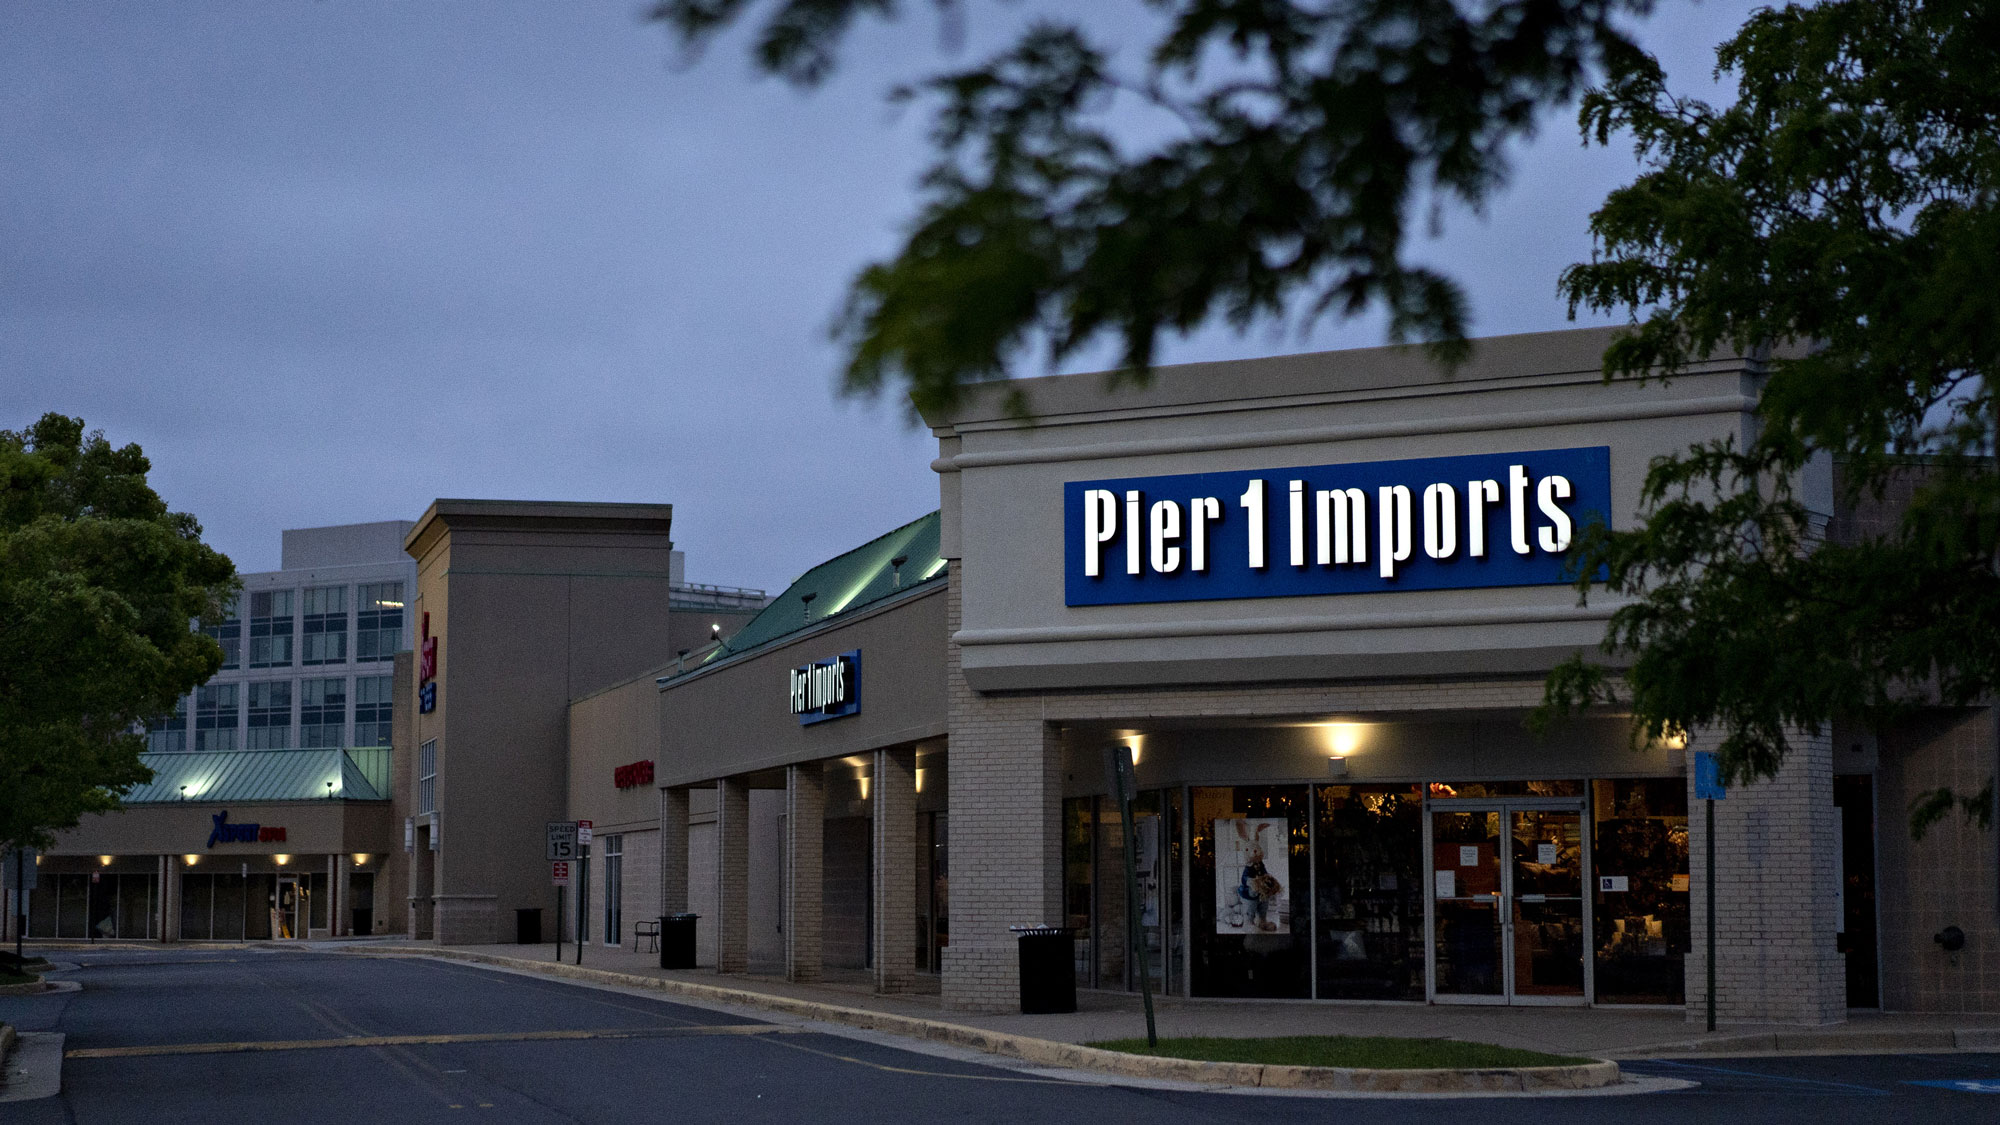 Pier 1 is officially going out of business